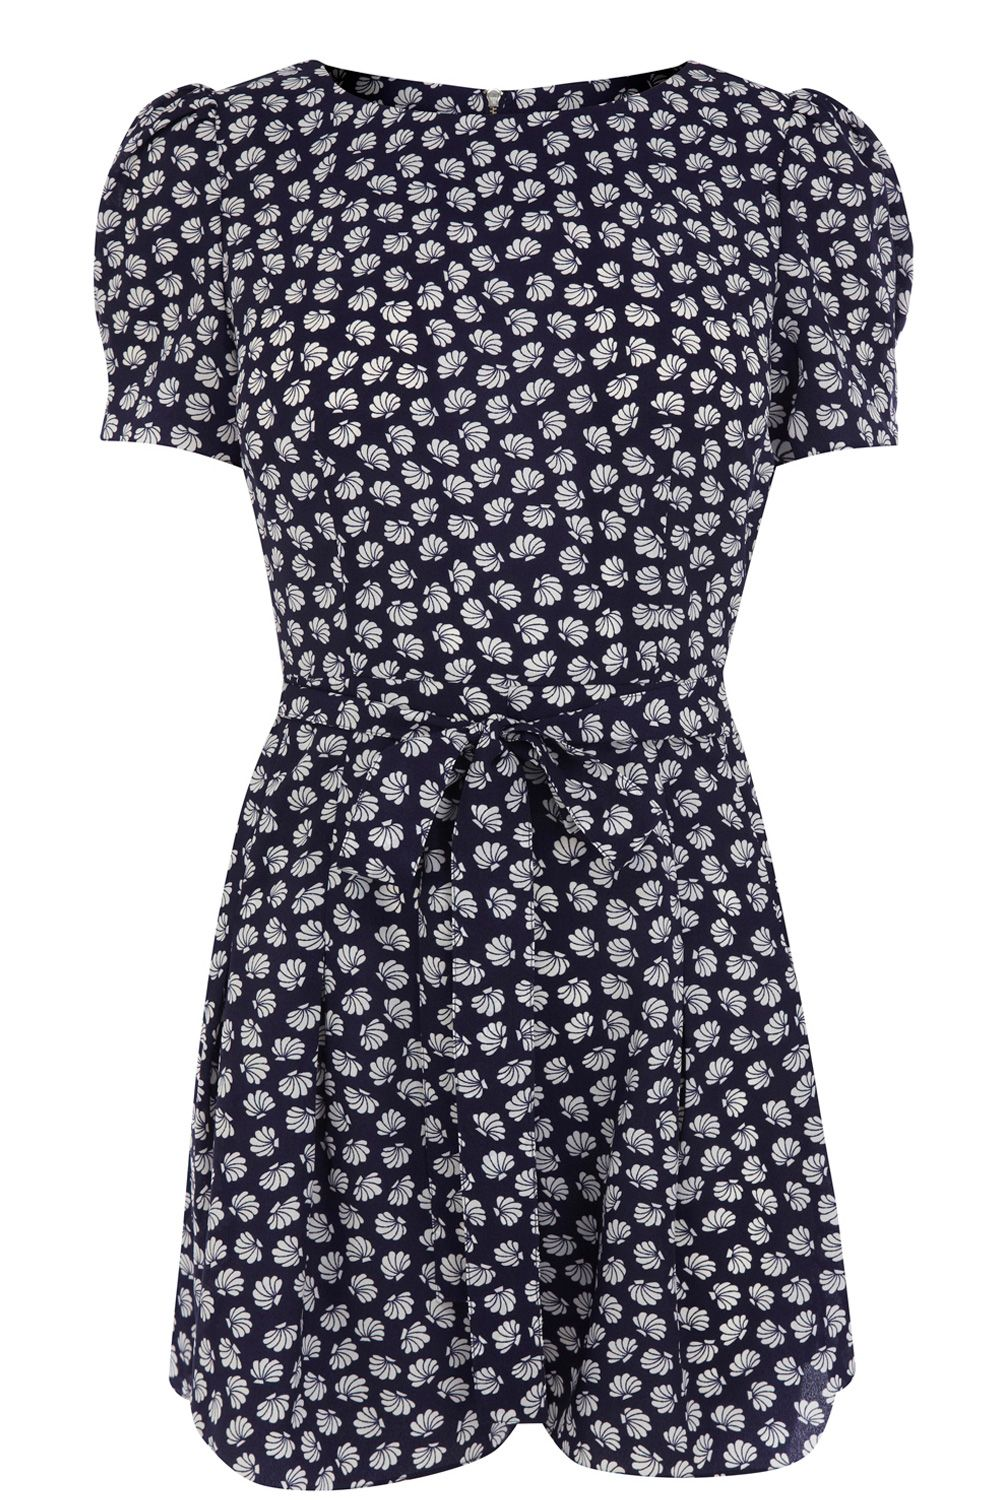 Shell playsuit